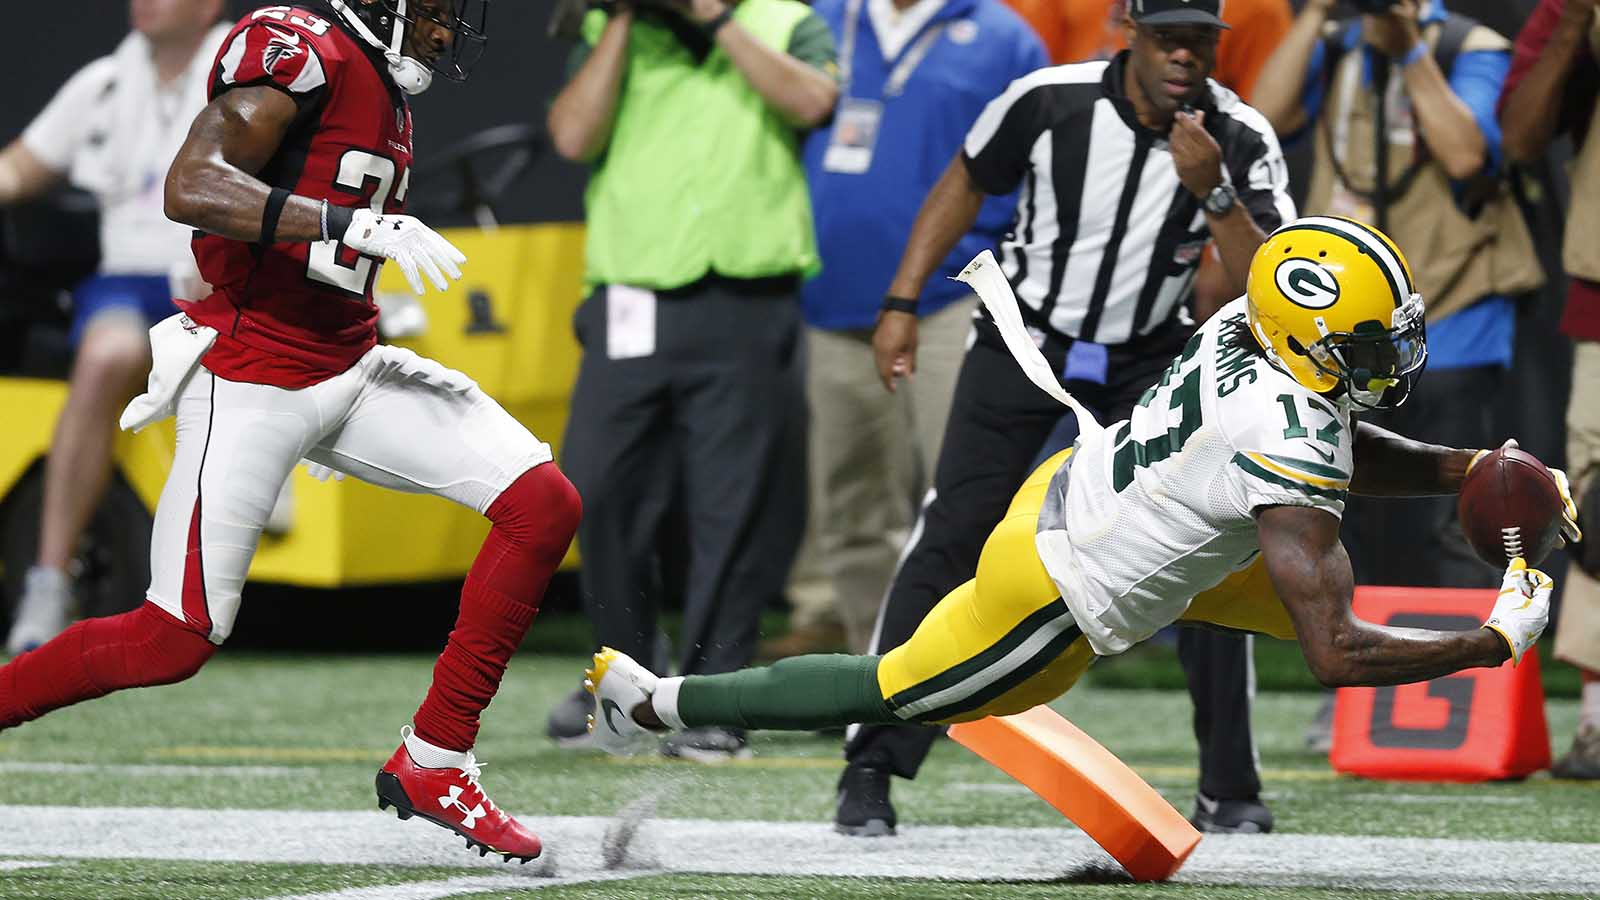 Green Bay Packers wide receiver Davante Adams (17) makes a touchdown catch against Atlanta Falcons cornerback Robert Alford (23) during the second of an NFL football game, Sunday, Sept. 17, 2017, in Atlanta. (AP Photo/John Bazemore)